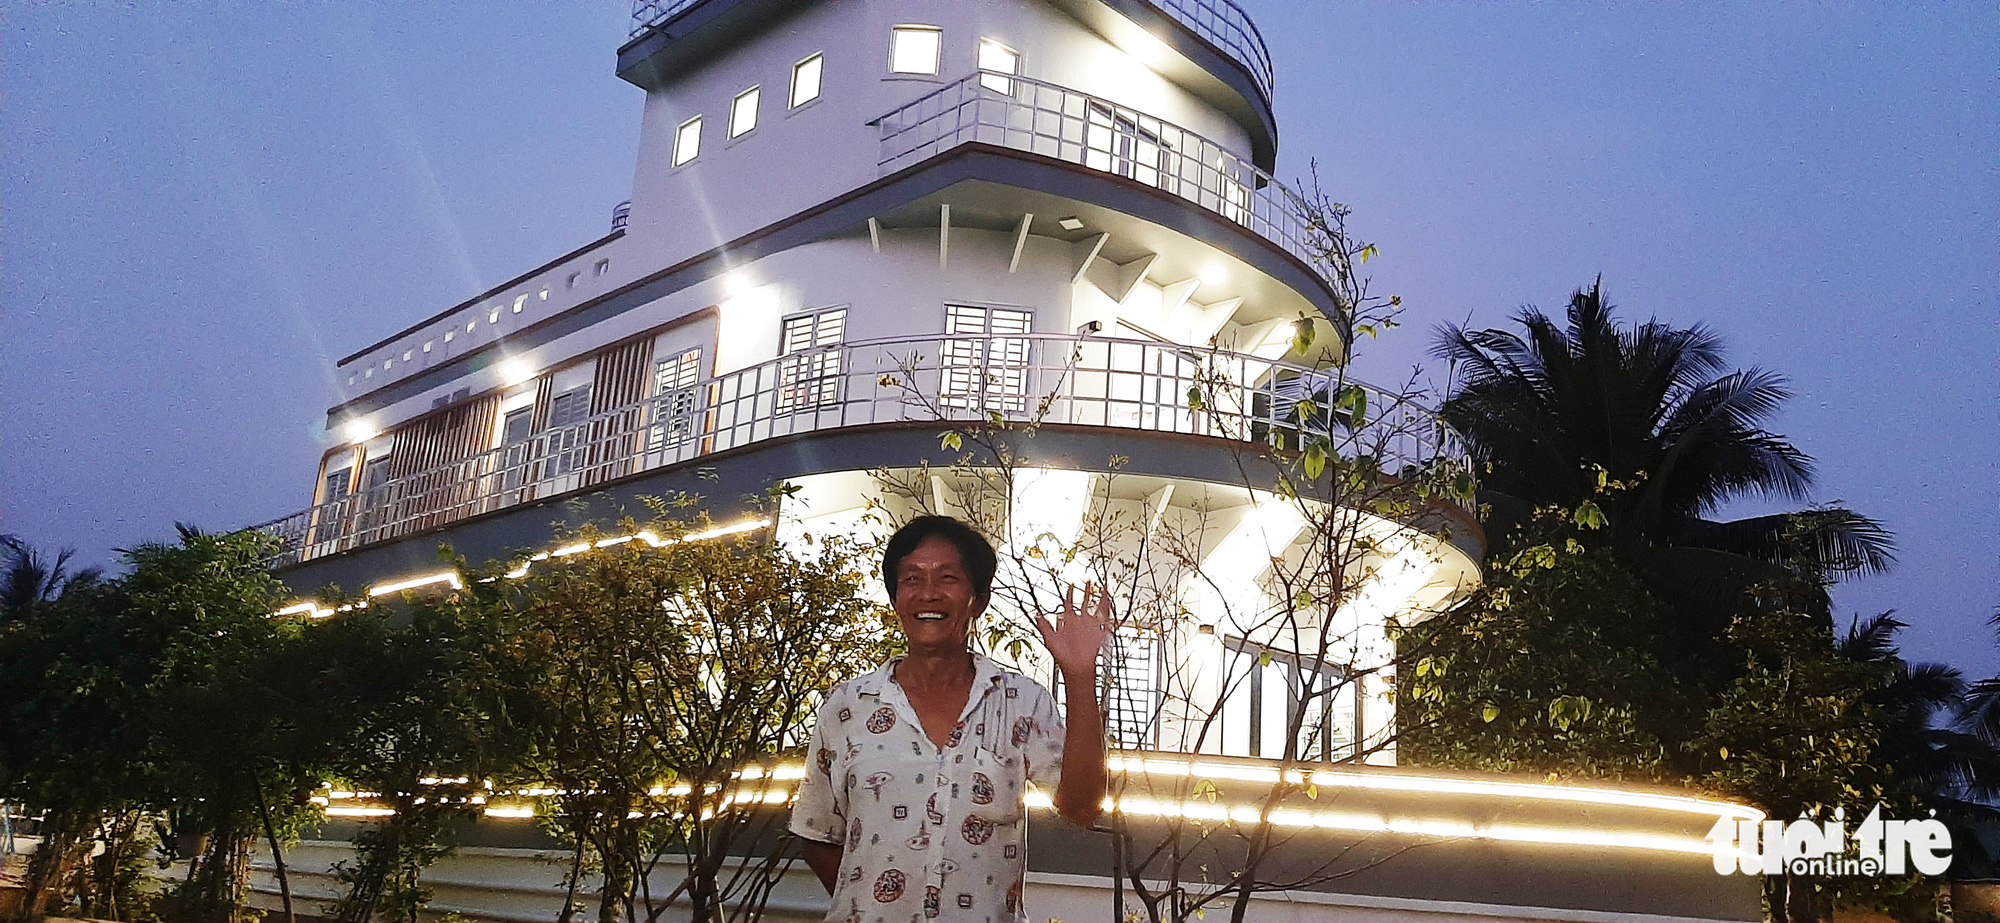 Cao Van Nam in front of his yacht-shaped house in Vinh Long Province, Vietnam, February 2021. Photo: Chi Hanh / Tuoi Tre